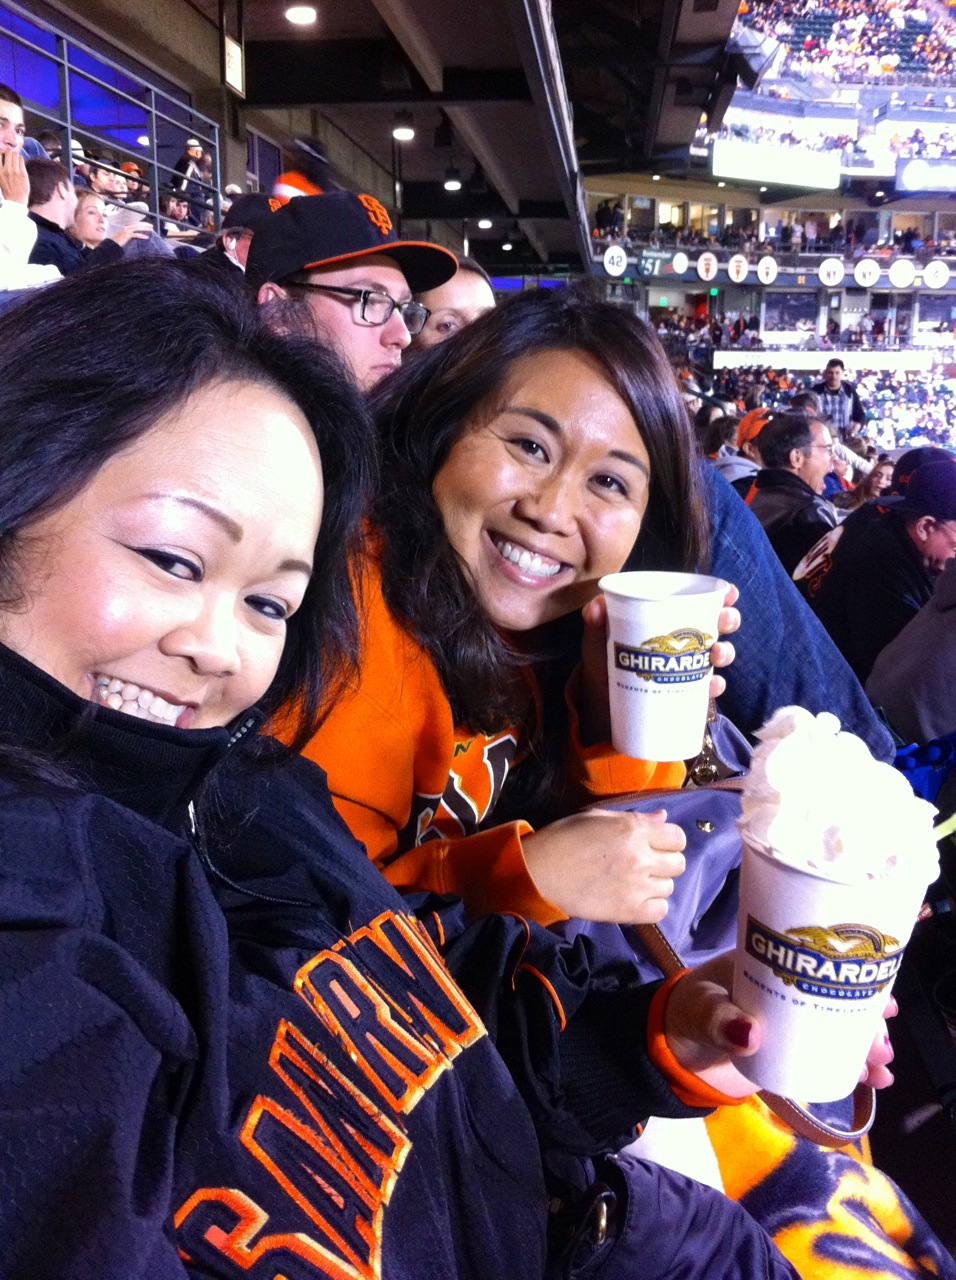 SF Giants and Ghirardelli Hot Chocolate!